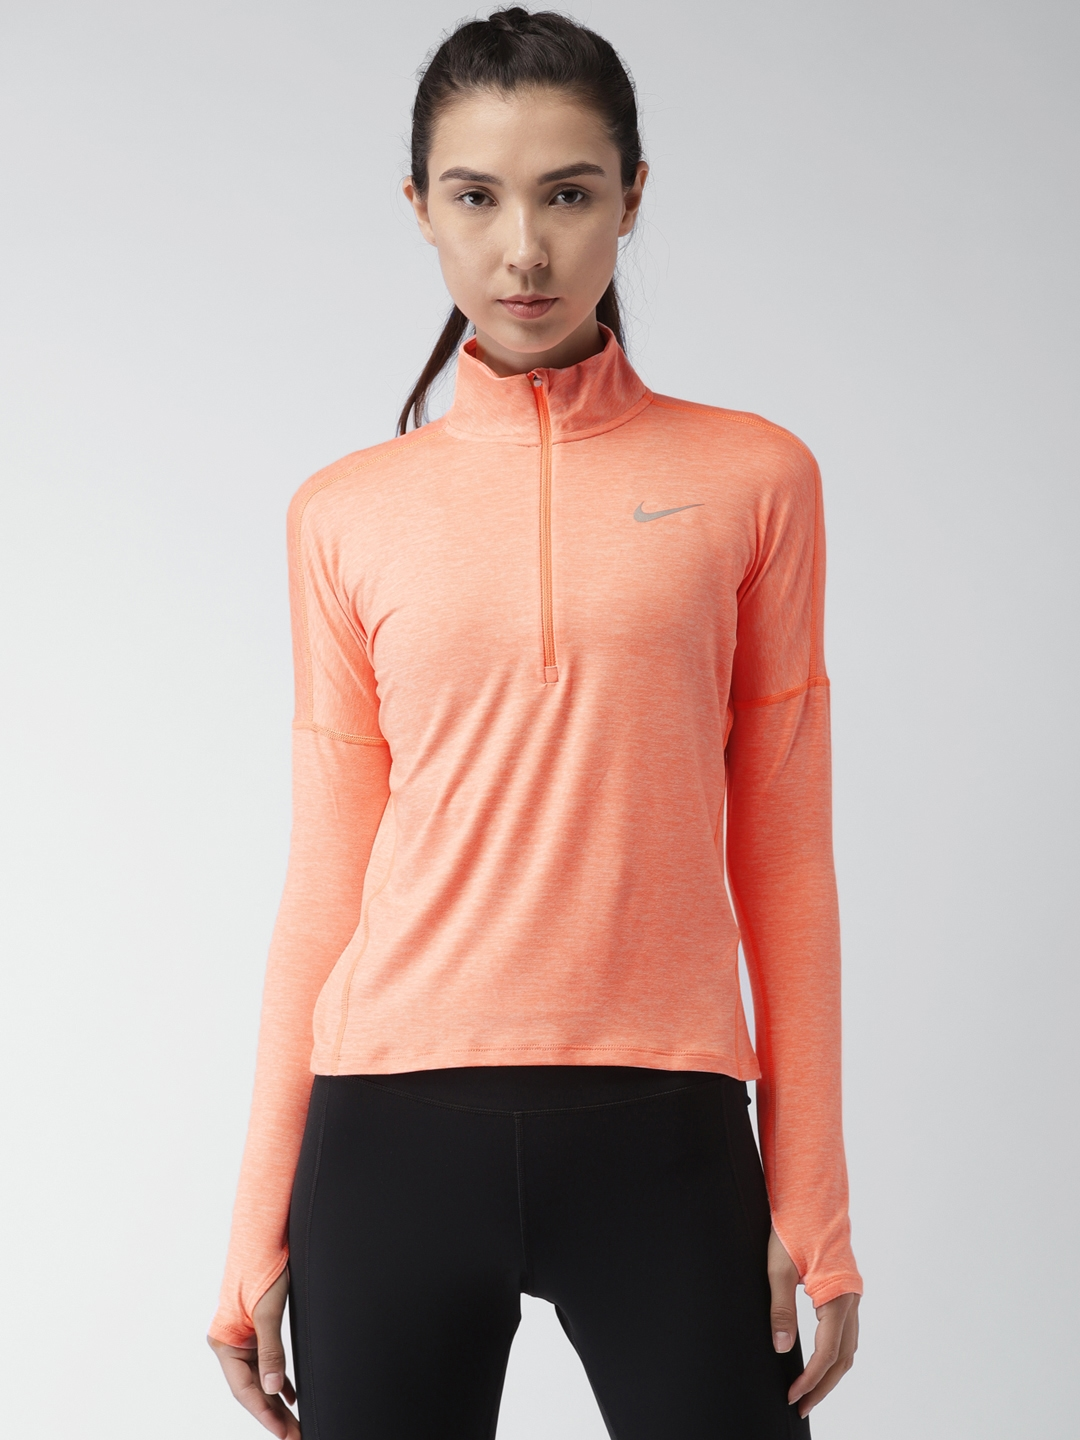 48d5ebd291 Buy Nike Women Orange Dry Element Solid Running T Shirt - Tshirts ...